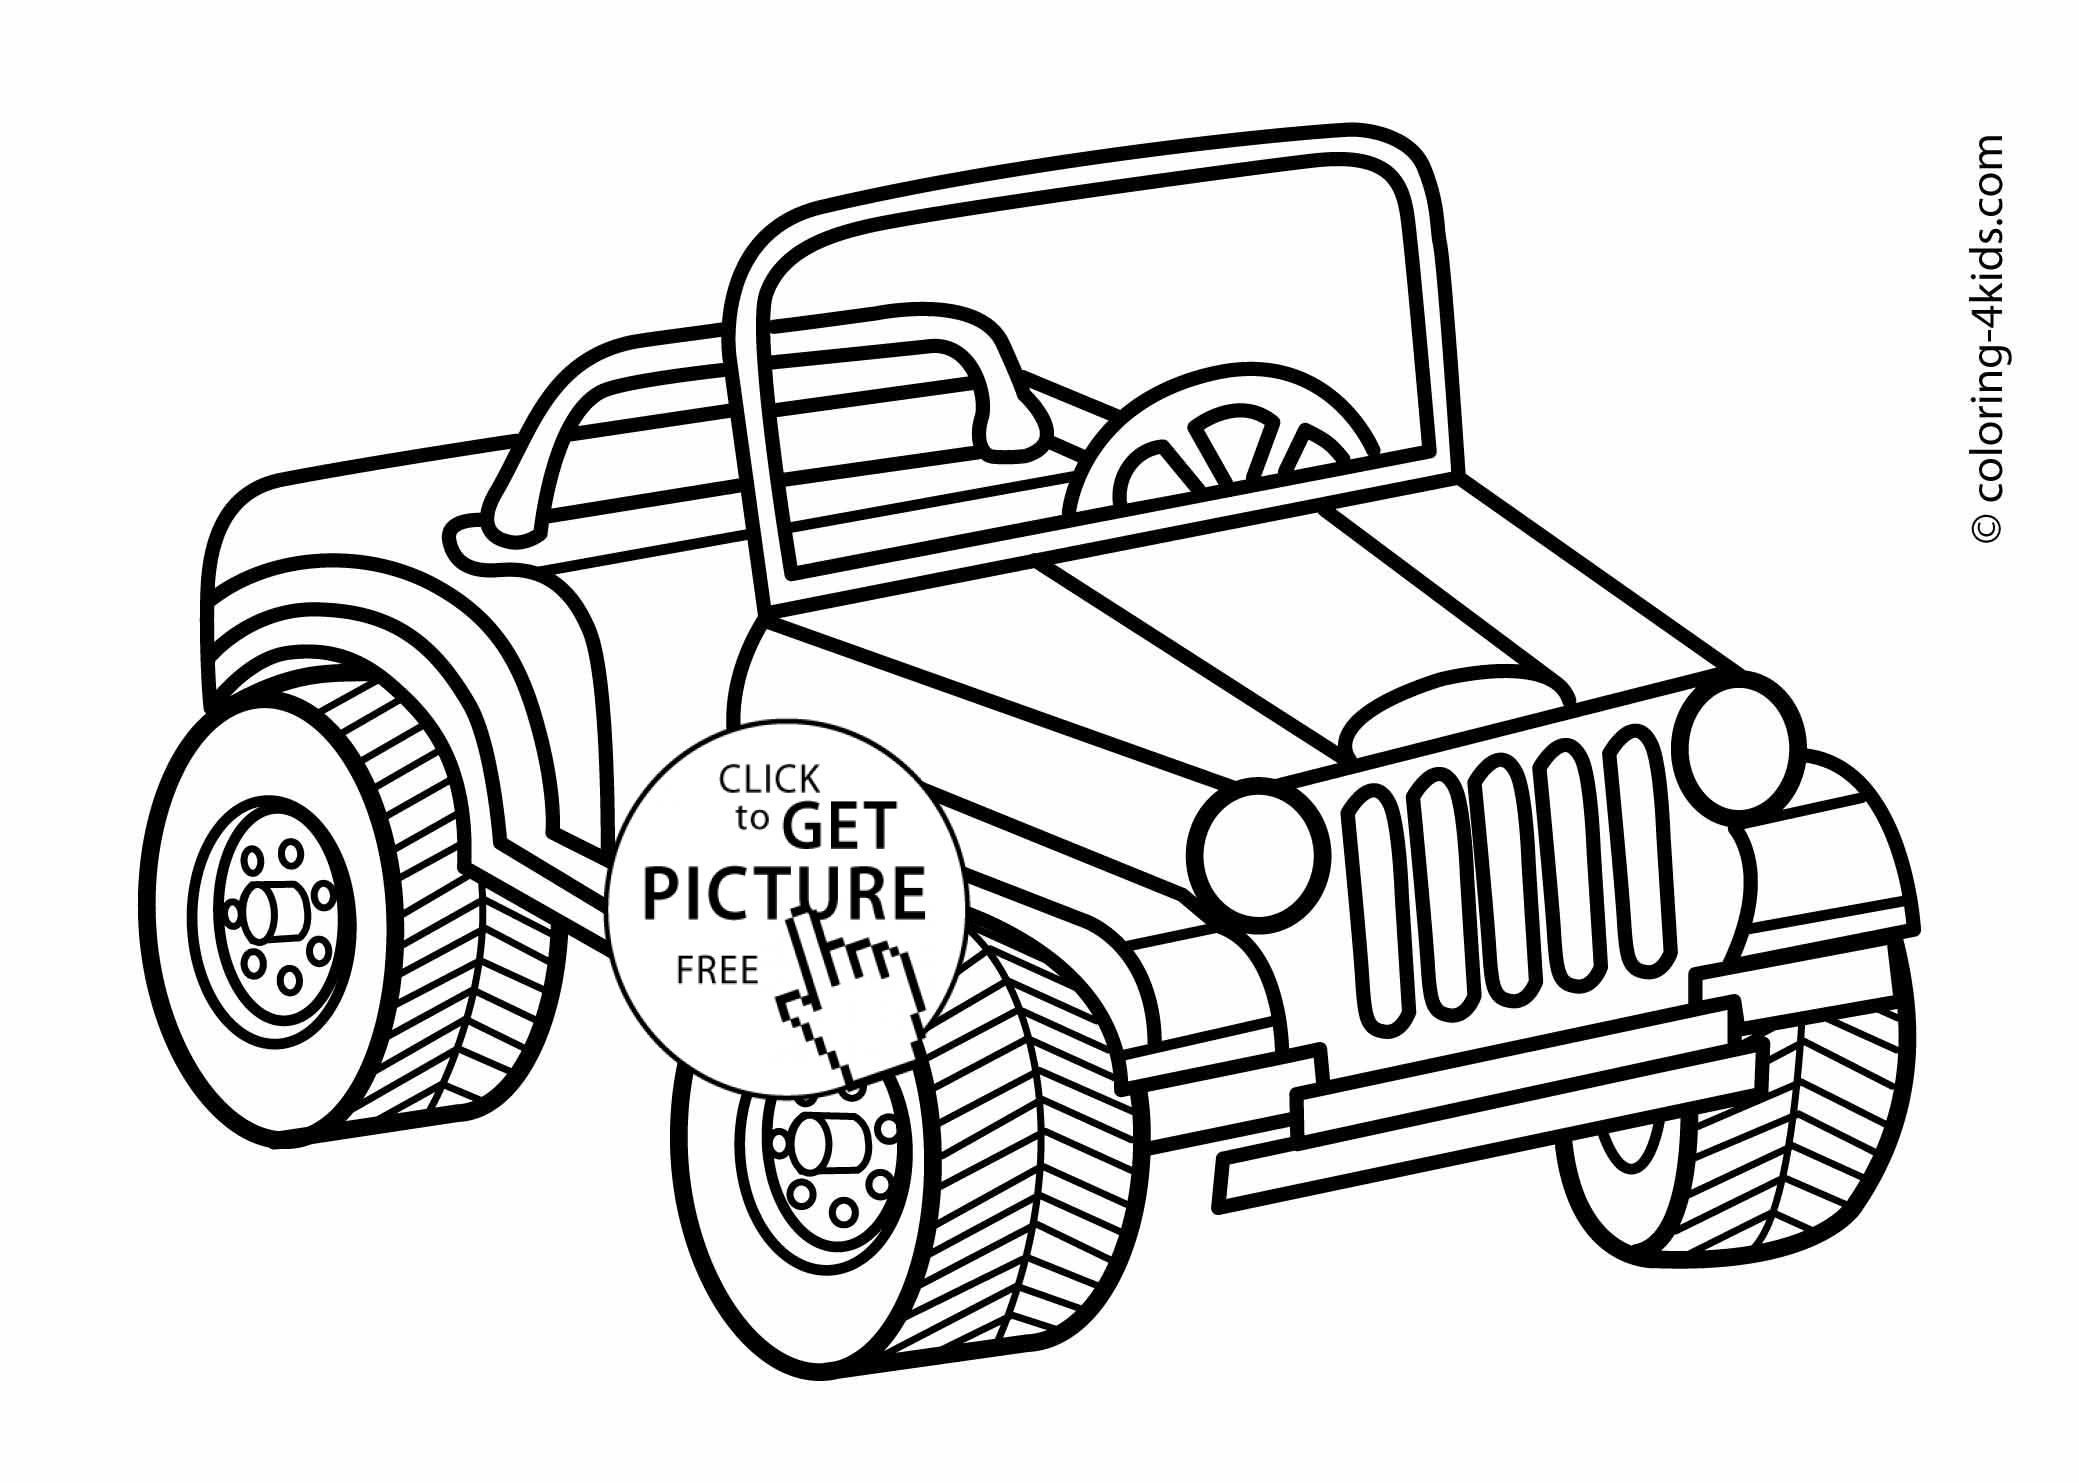 2079x1483 Jeep Transportation Coloring Pages For Kids, Printable